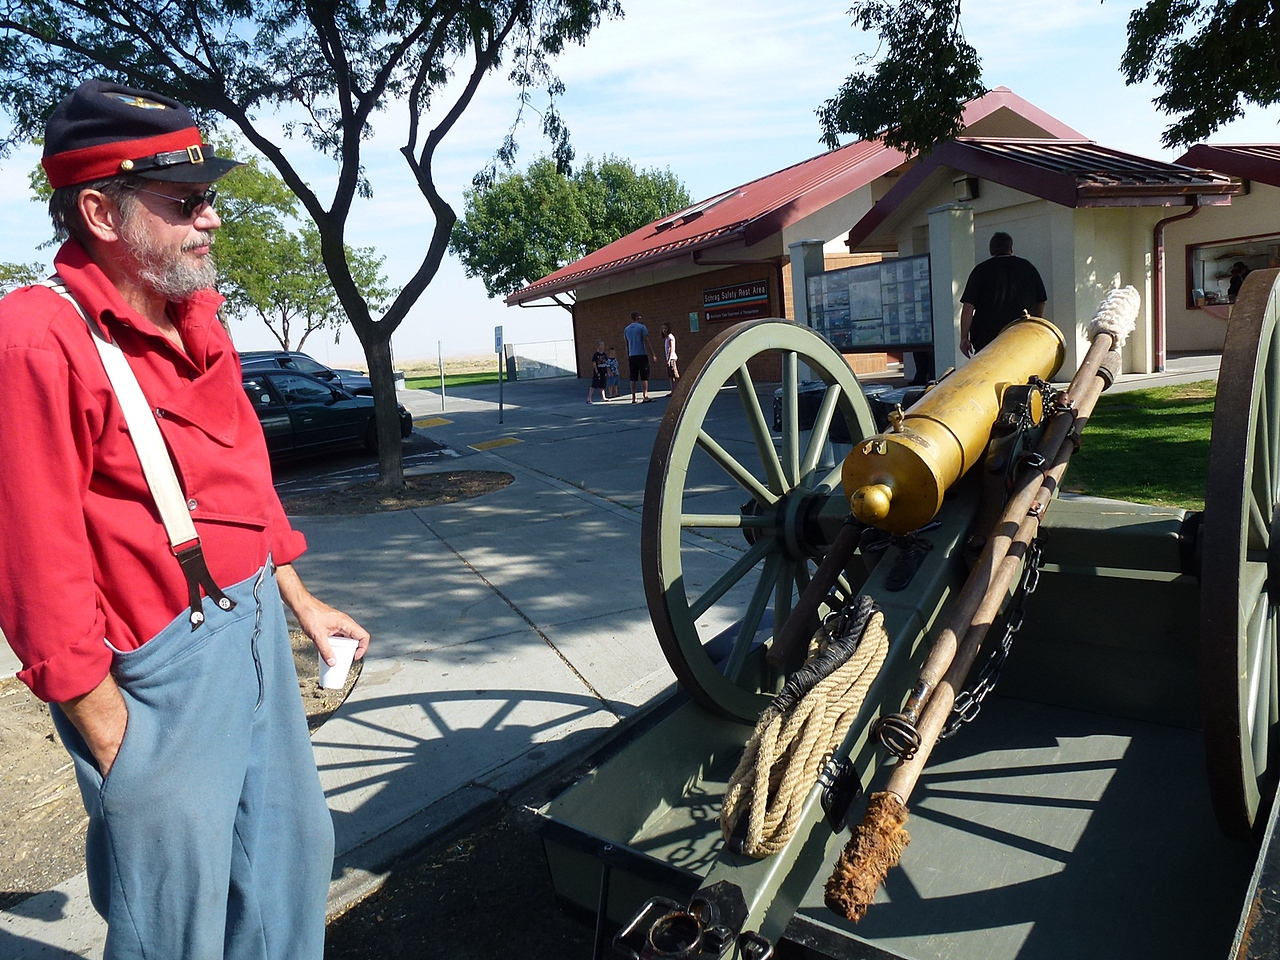 These are Civil War Re-enactment guy's at the rest area.